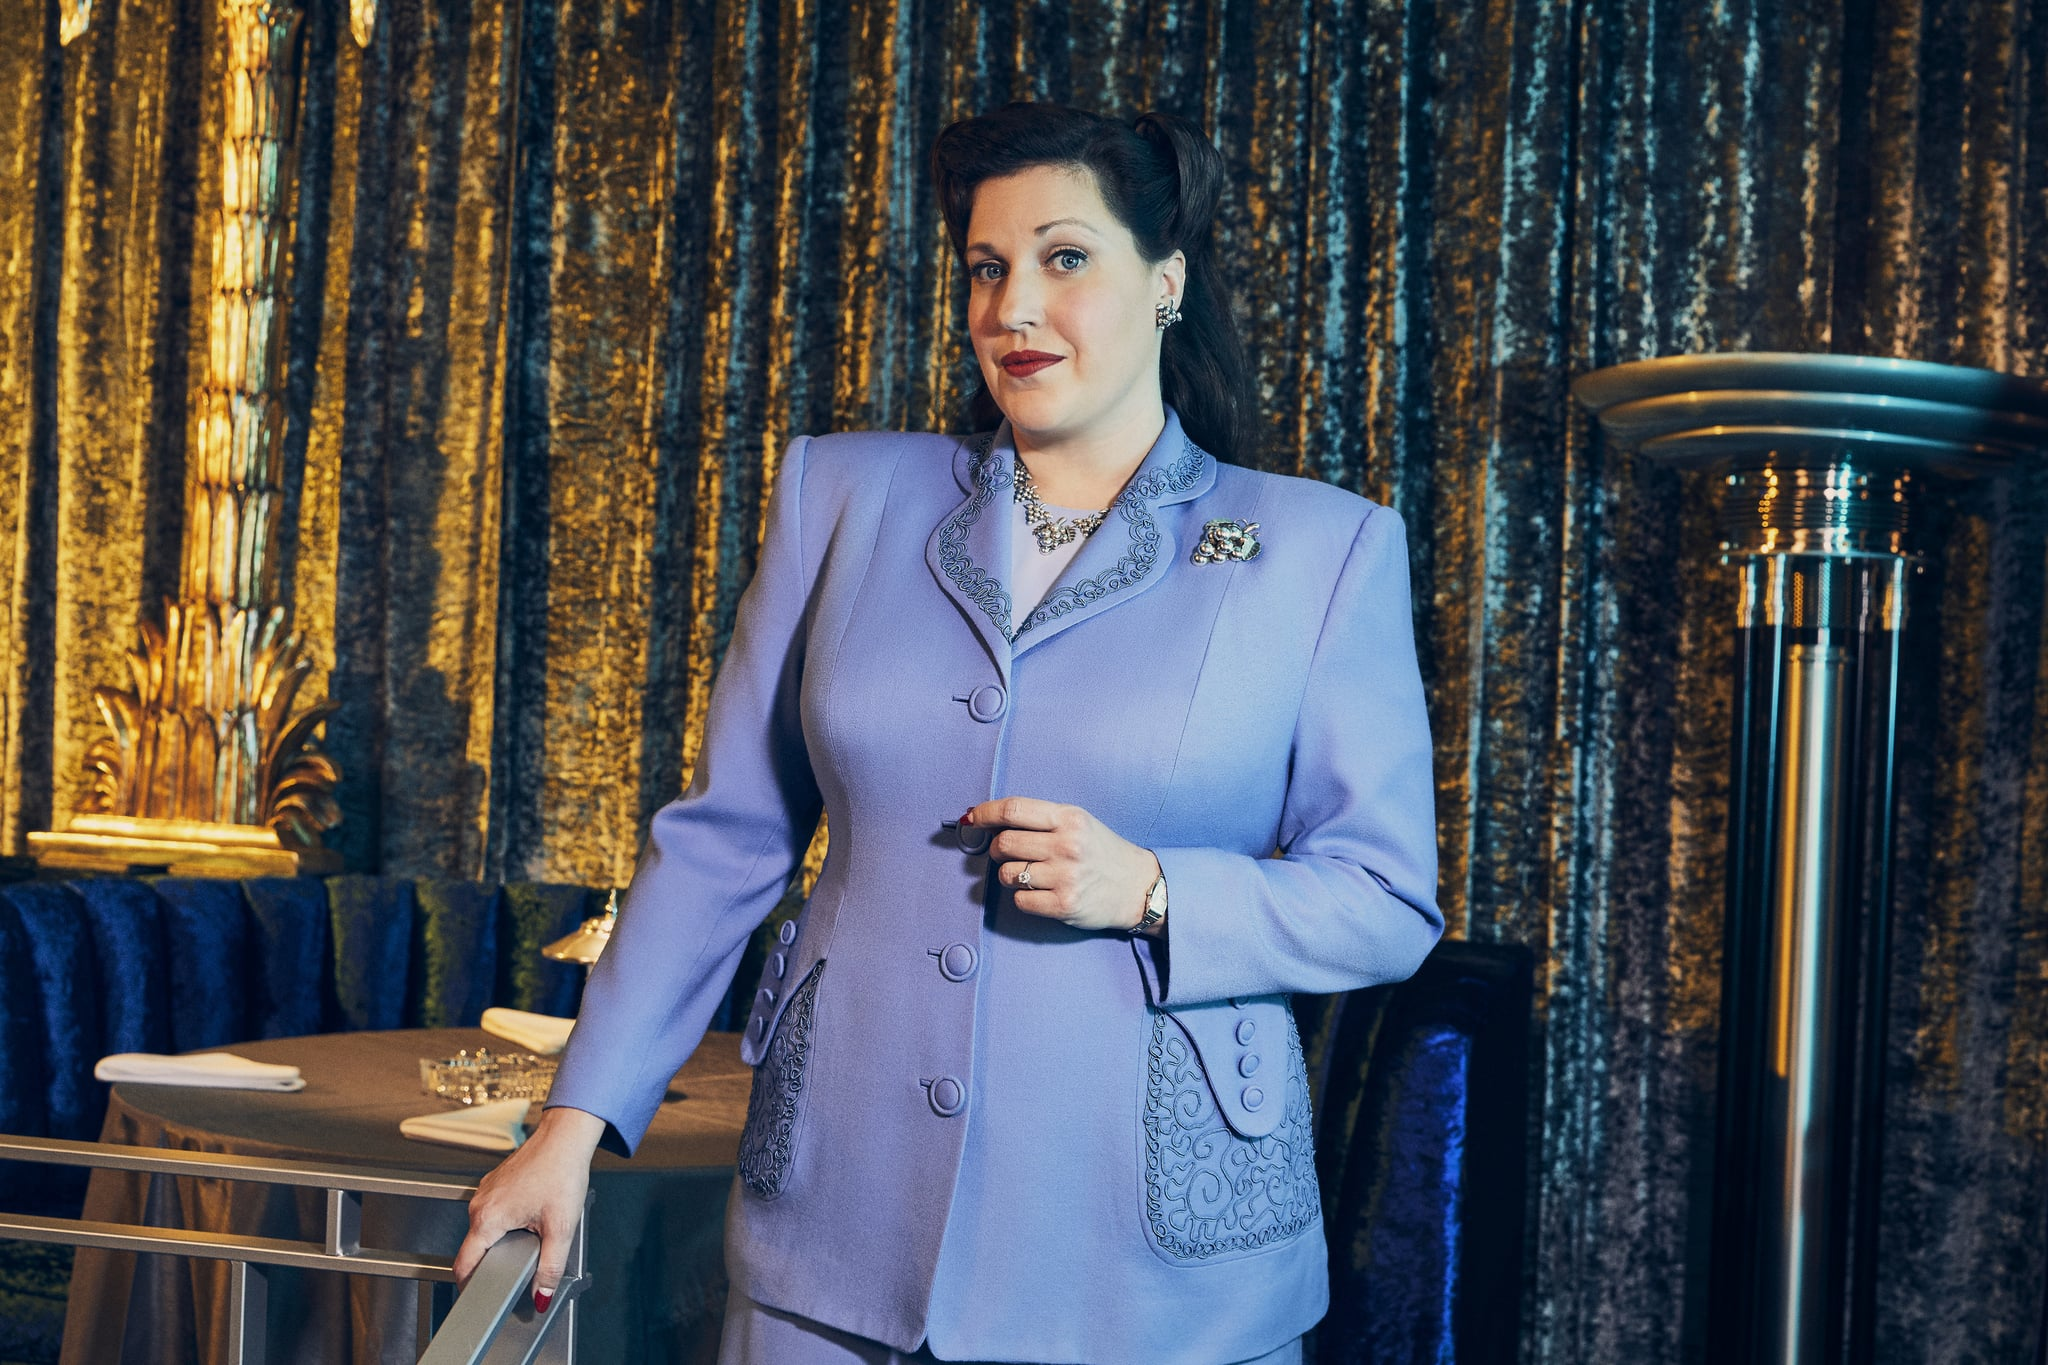 Pictured: Allison Tolman as Alma of the Paramount+ series WHY WOMEN KILL Photo Cr: Sarah Coulter/ ©2021 Paramount+, Inc. All Rights Reserved.